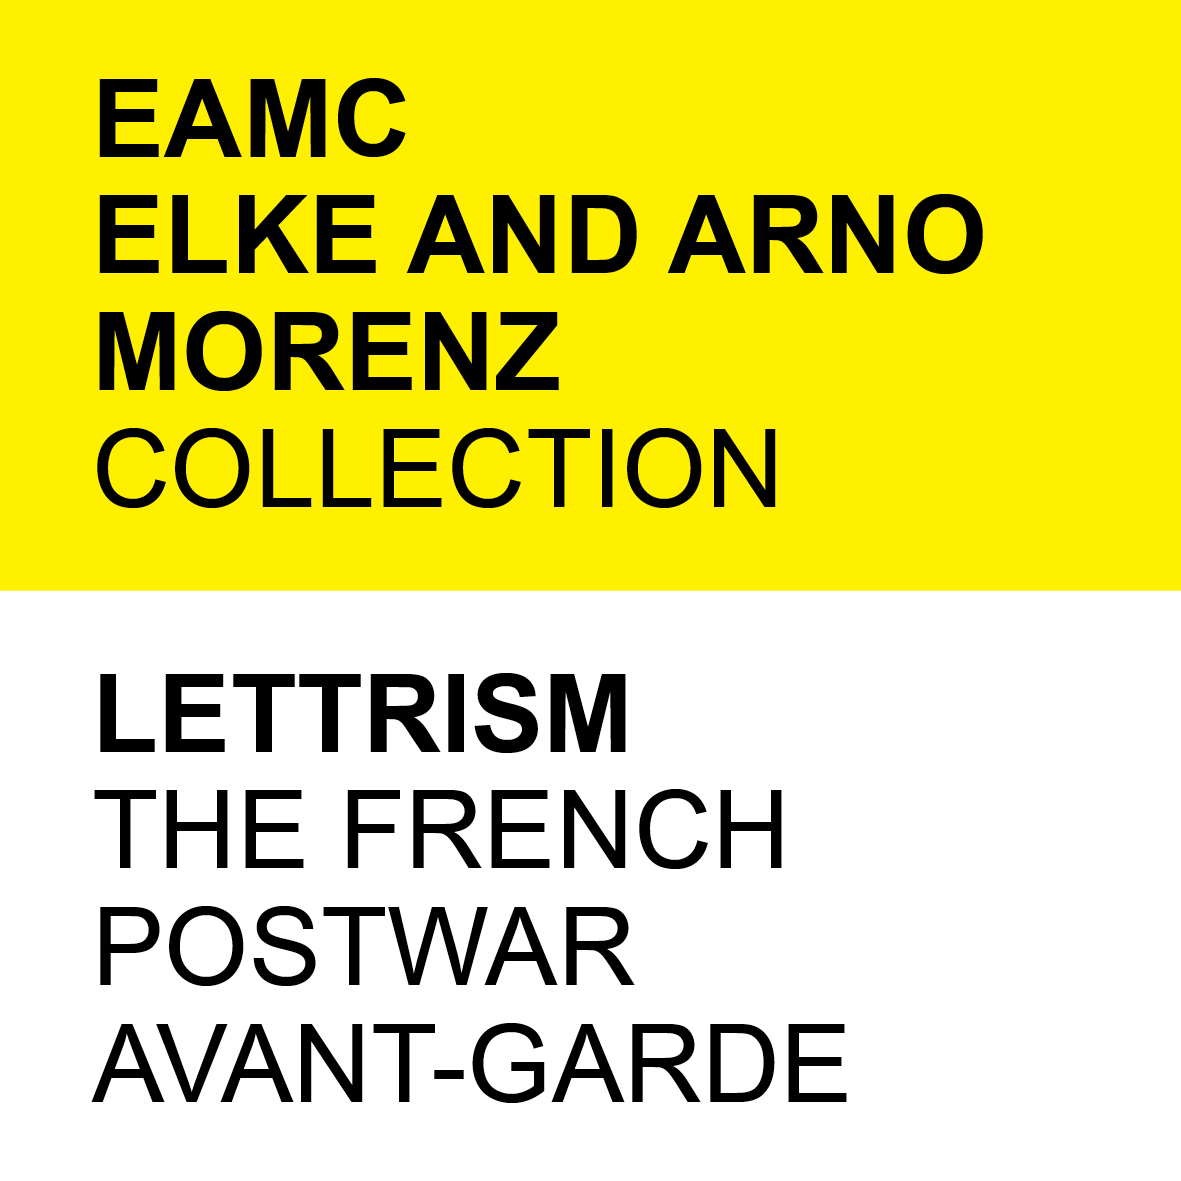 EAM Collection logo